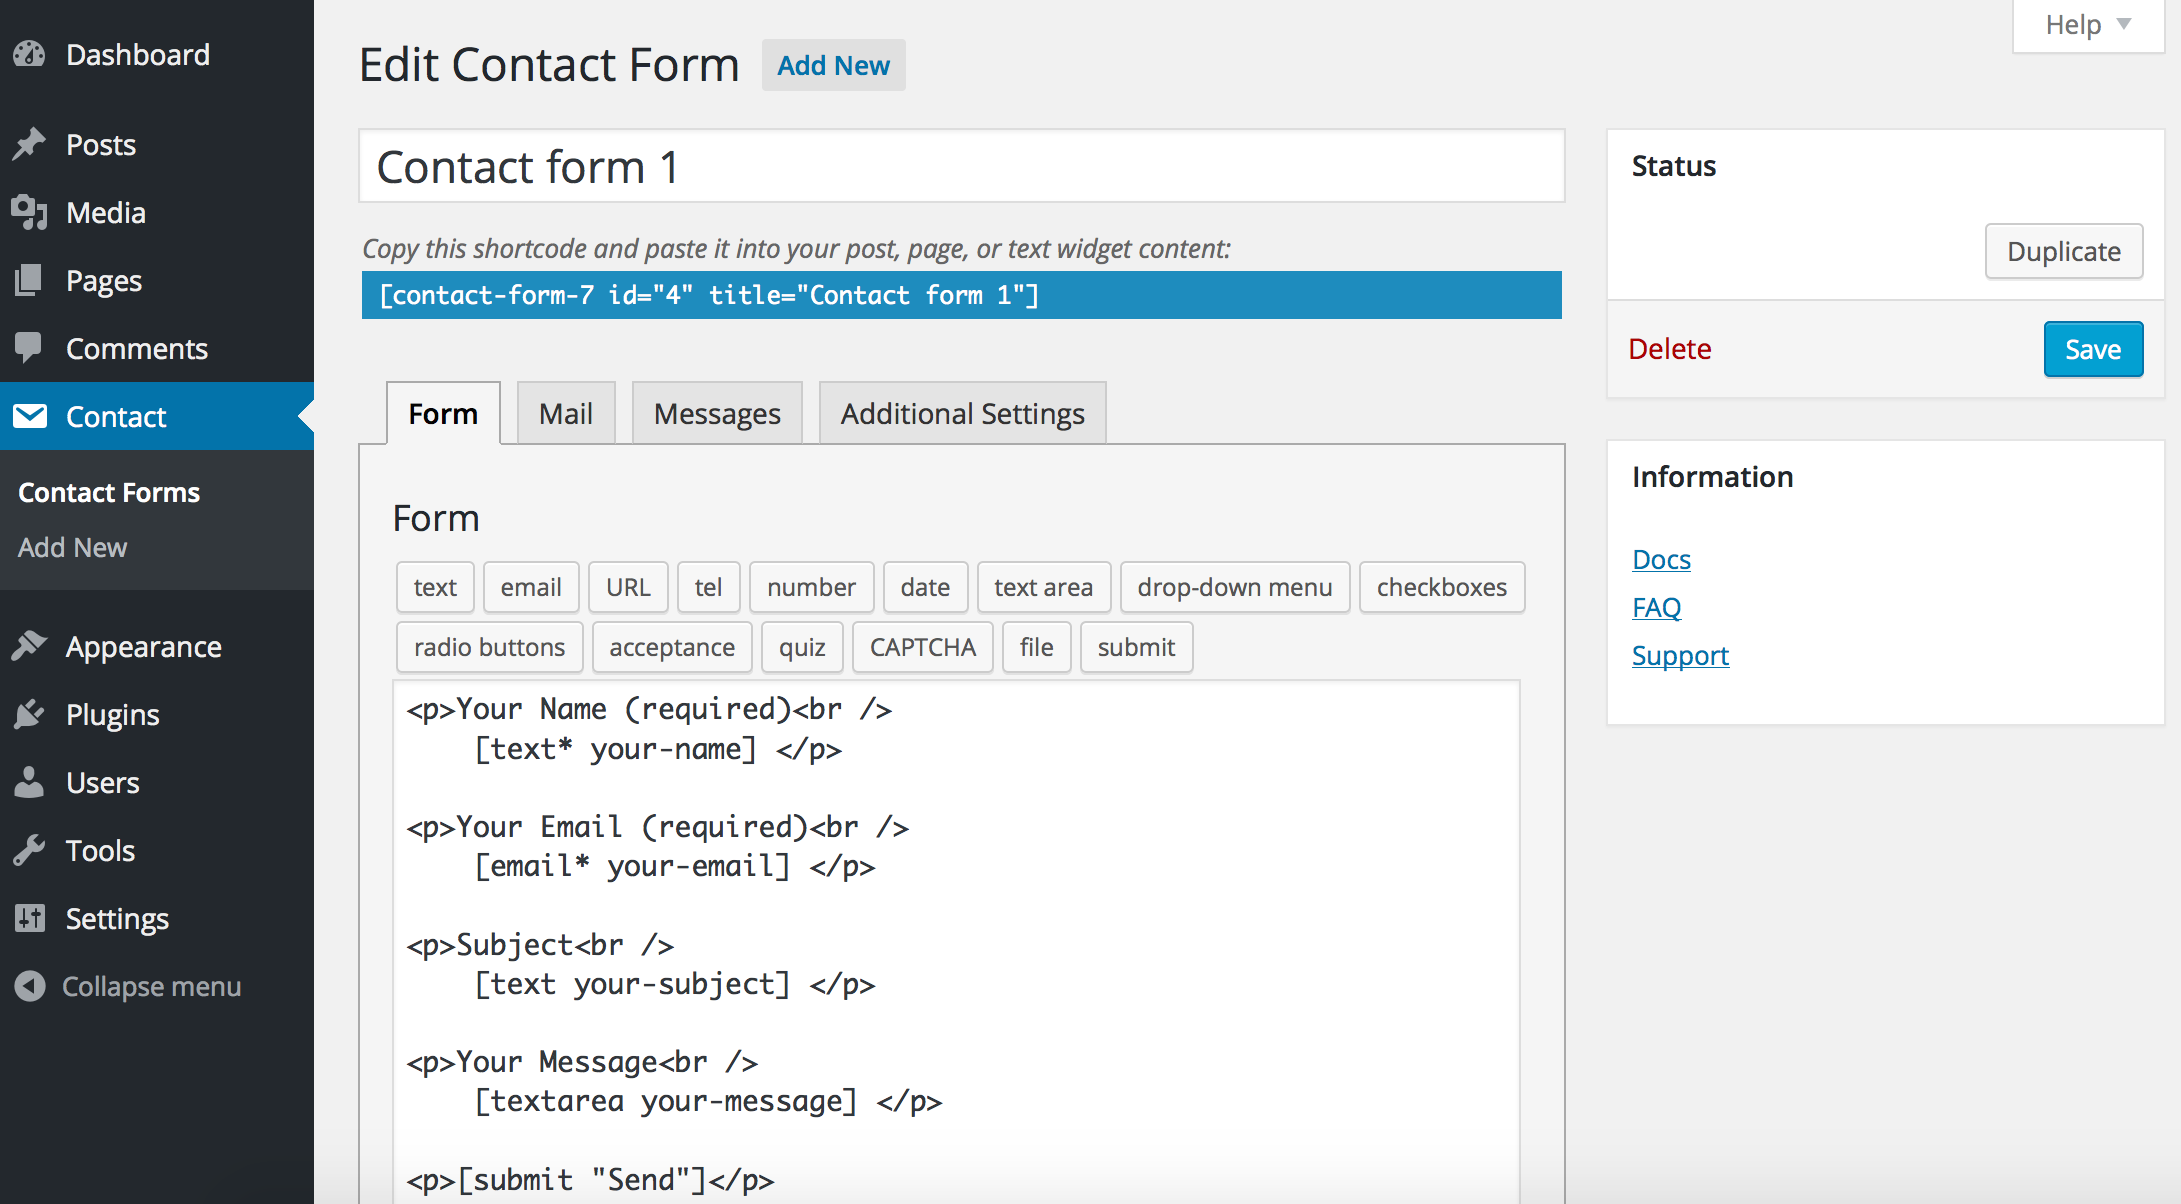 Example of Setting Up Contact Form For Attorneys